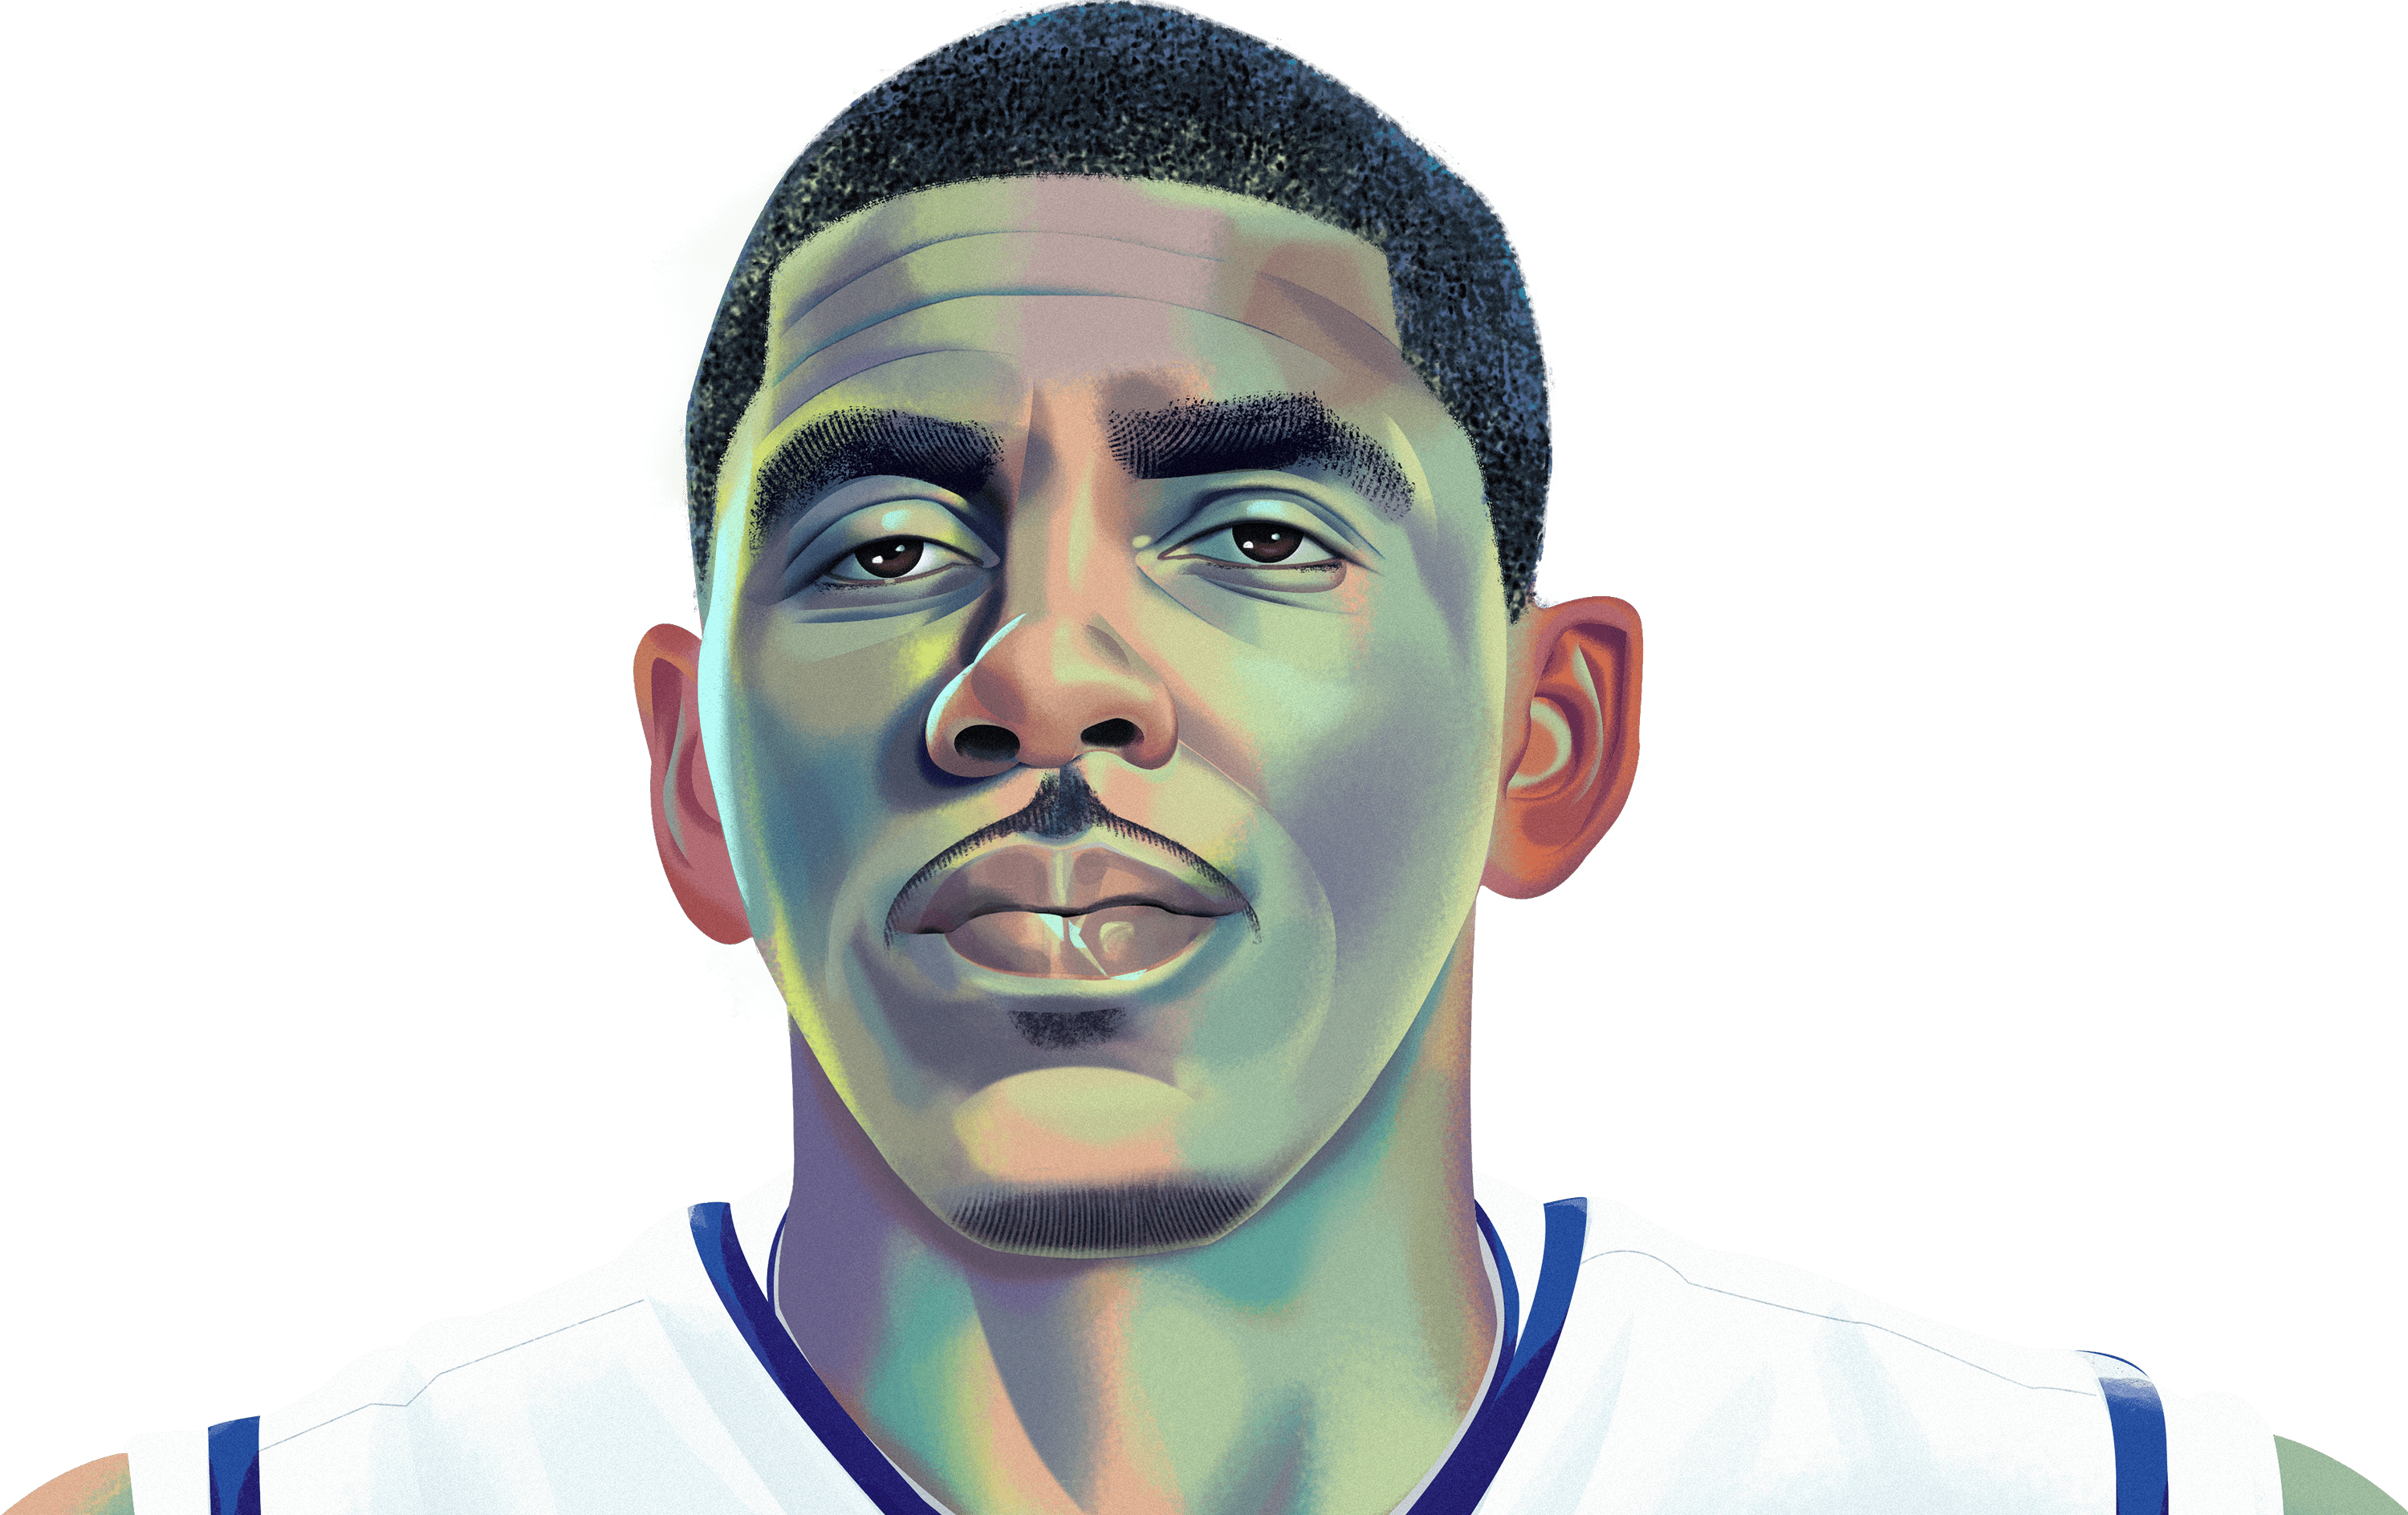 drew drawing kyrie irving